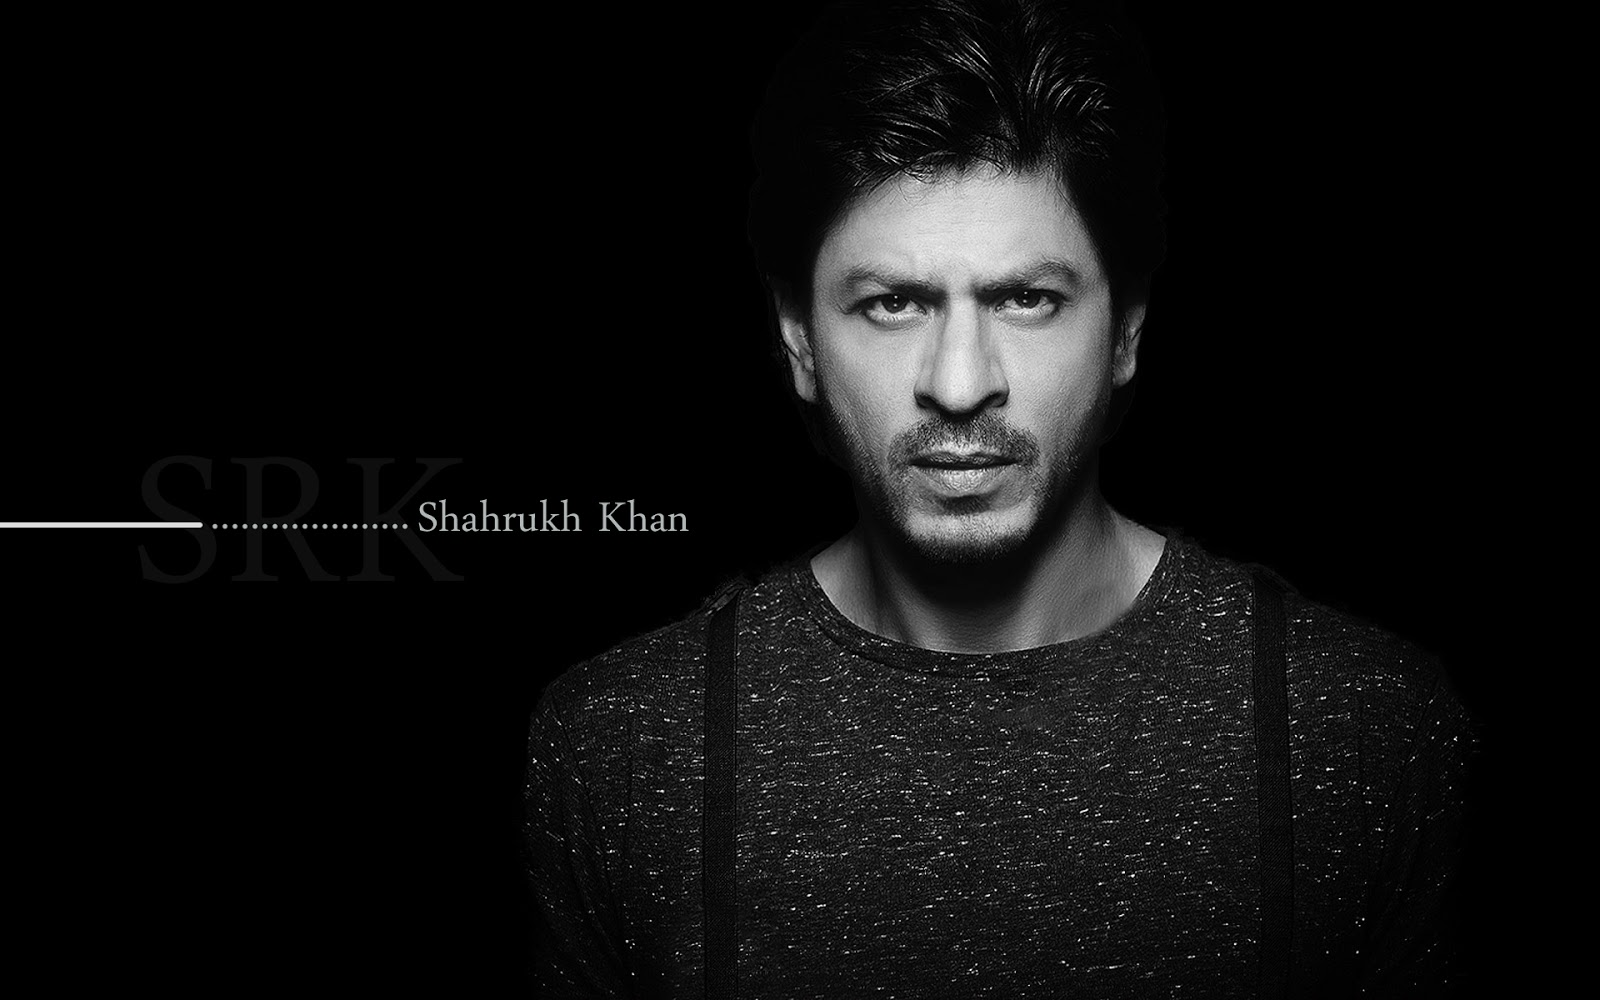 Global Pictures Gallery Shah Rukh Khan Full Hd Wallpapers: HD Wallpapers: Download Shahrukh Khan Wallpapers HD 2015